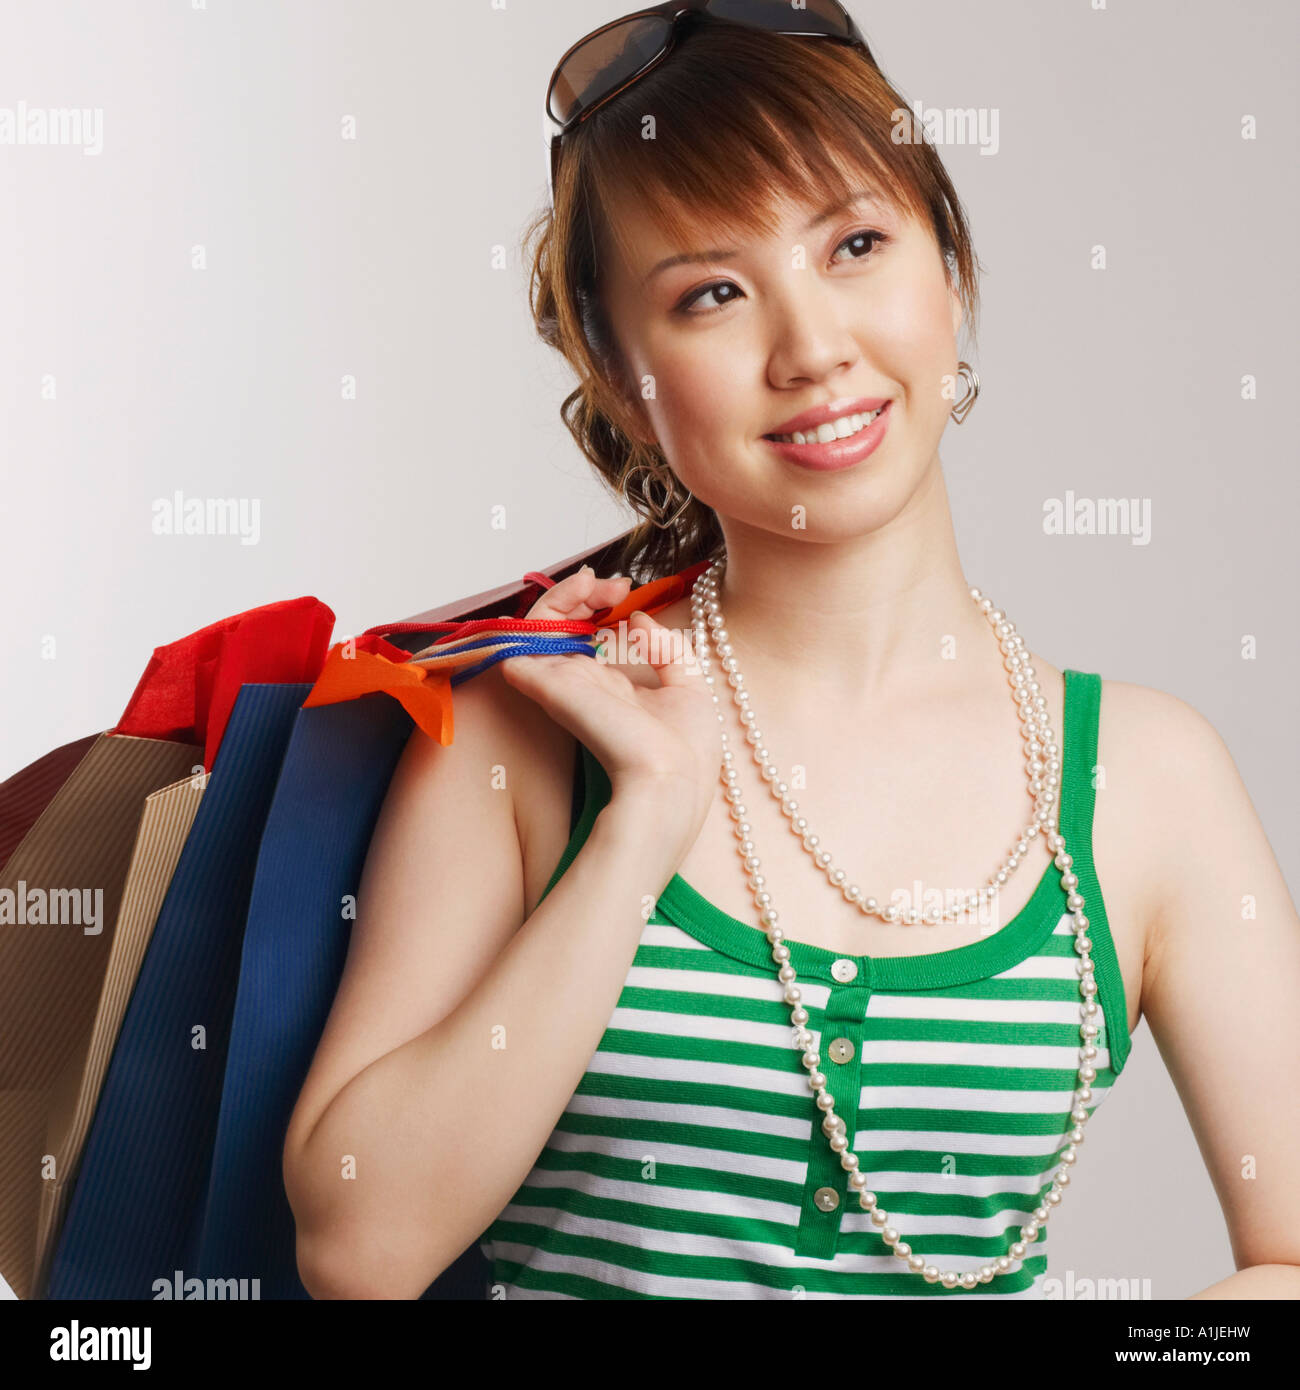 Close-up of a young woman carrying shopping bags and looking up - Stock Image